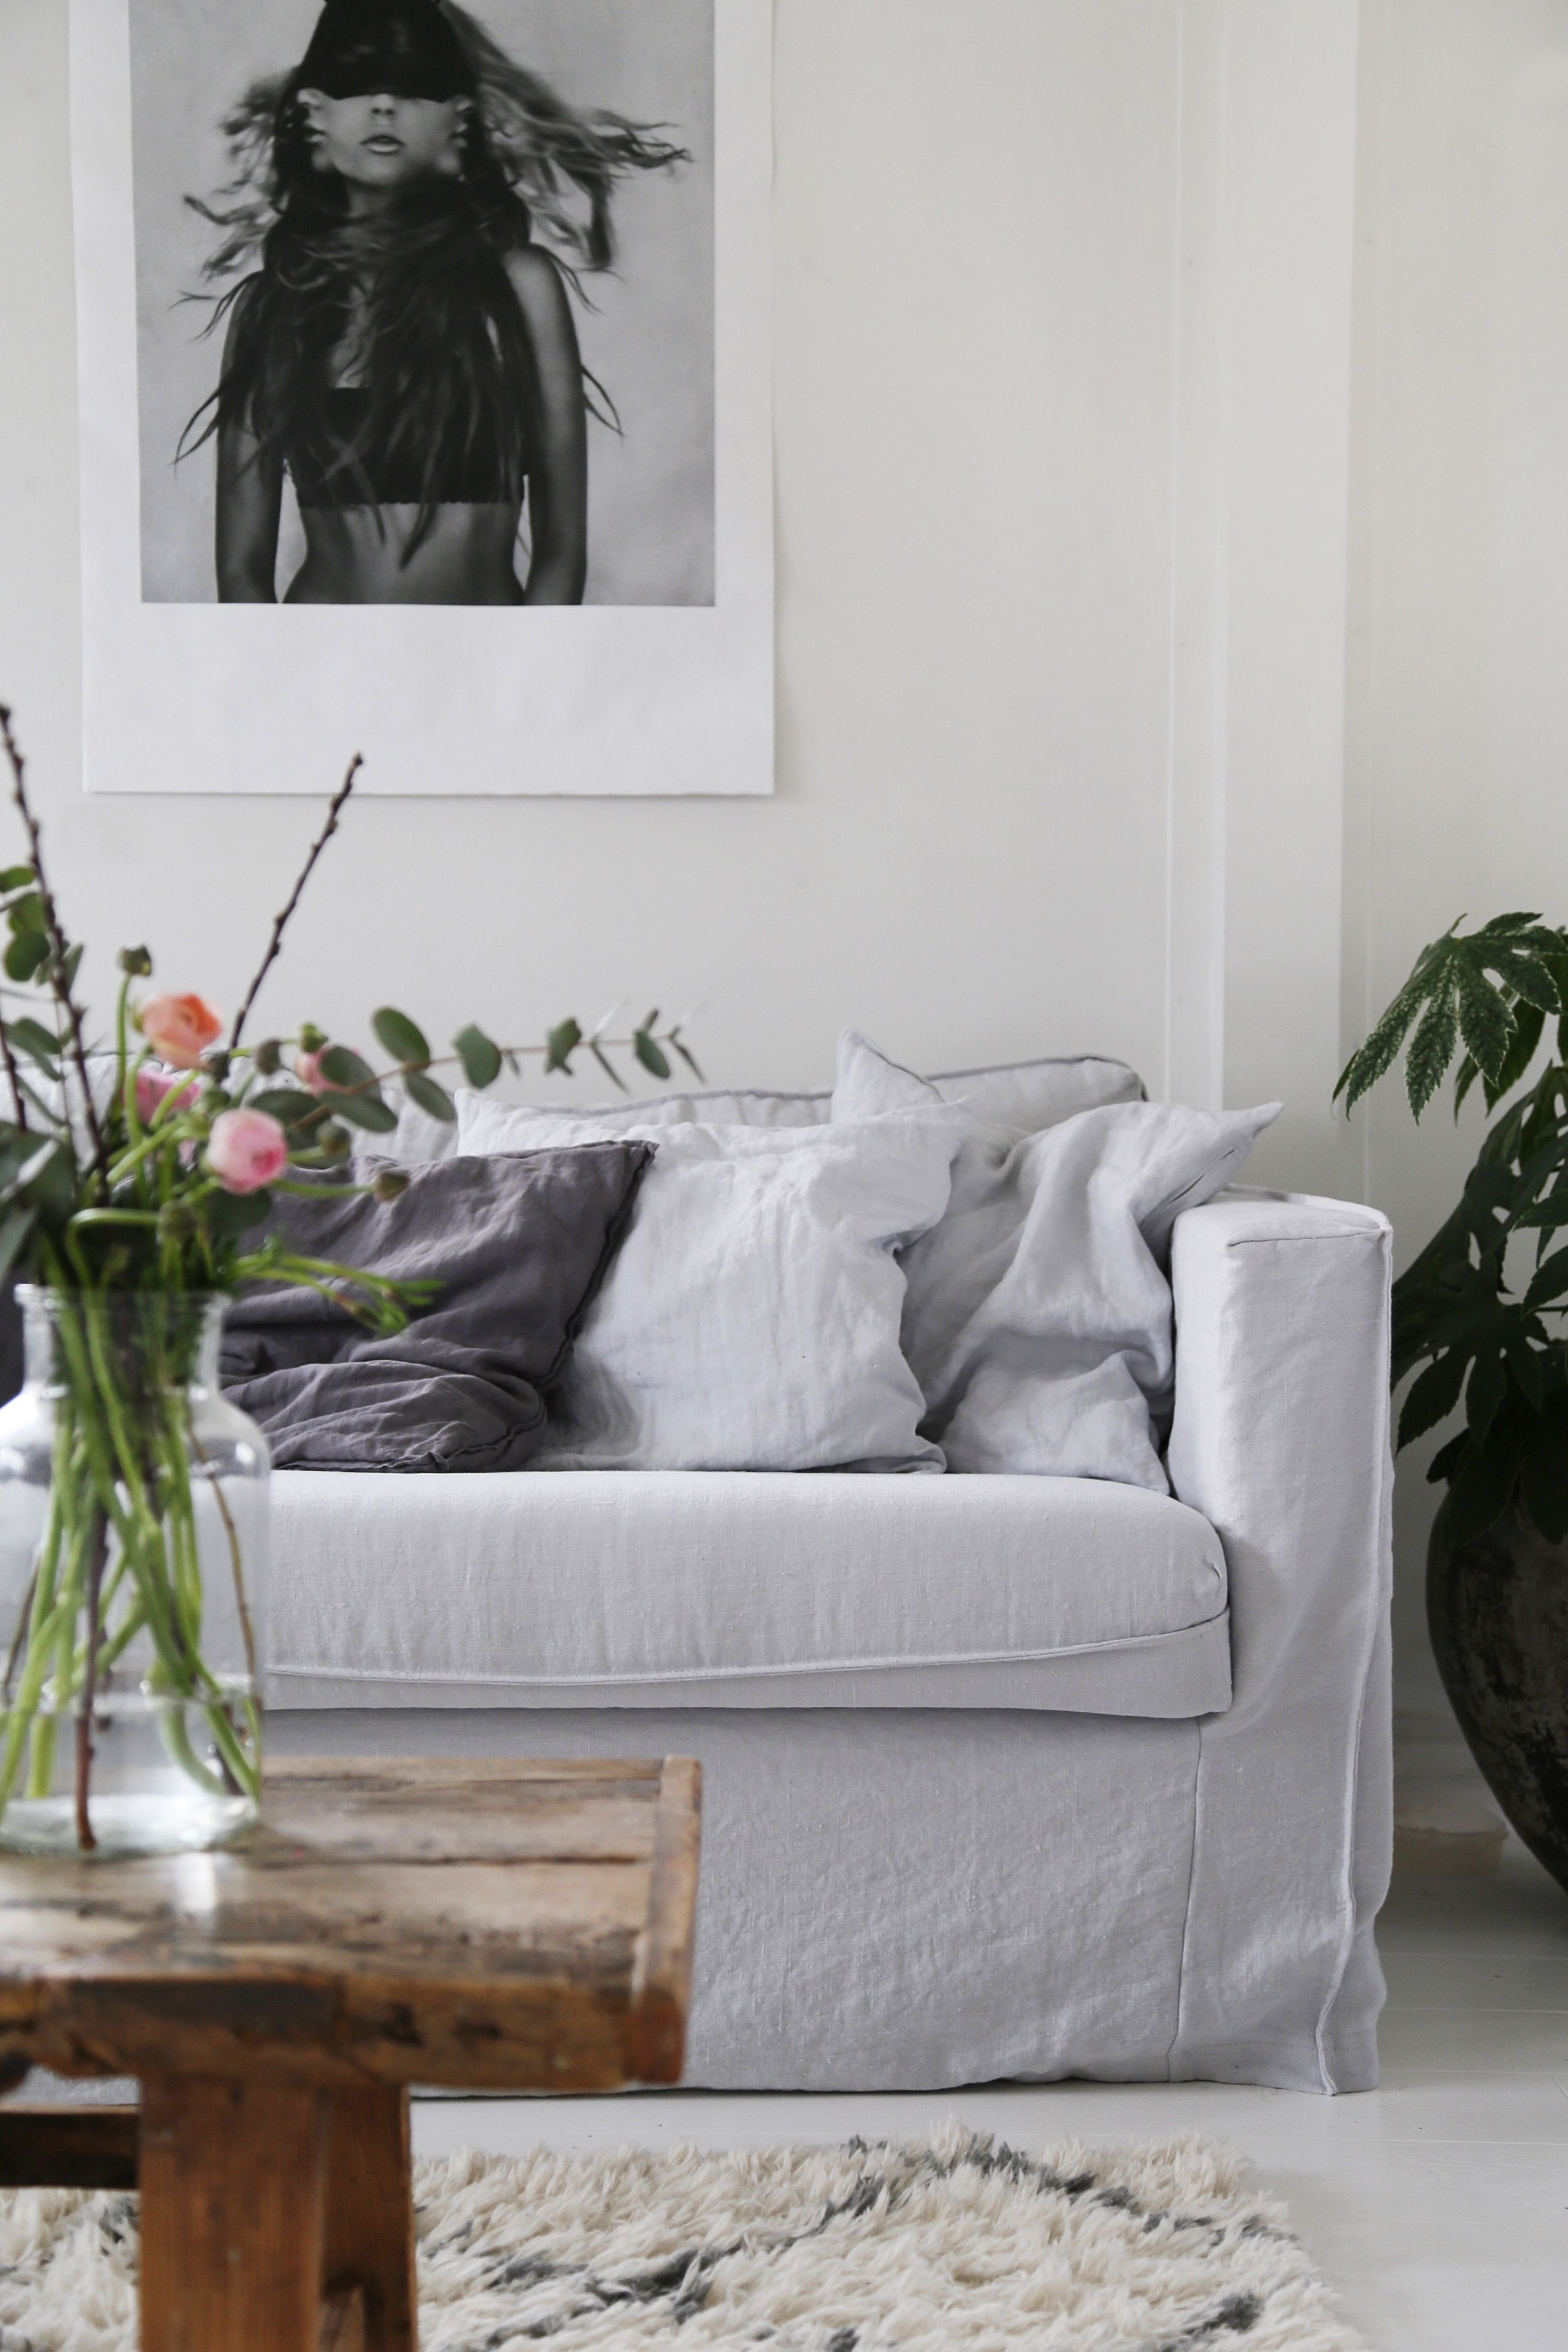 Boho Scandi Vibes Featuring Linen Sofa And Rustic Wooden Coffee Table Atelje18 S Artfully Layered Living Room Seen Here An Ik Soffoverdrag Vardagsrum Soffa